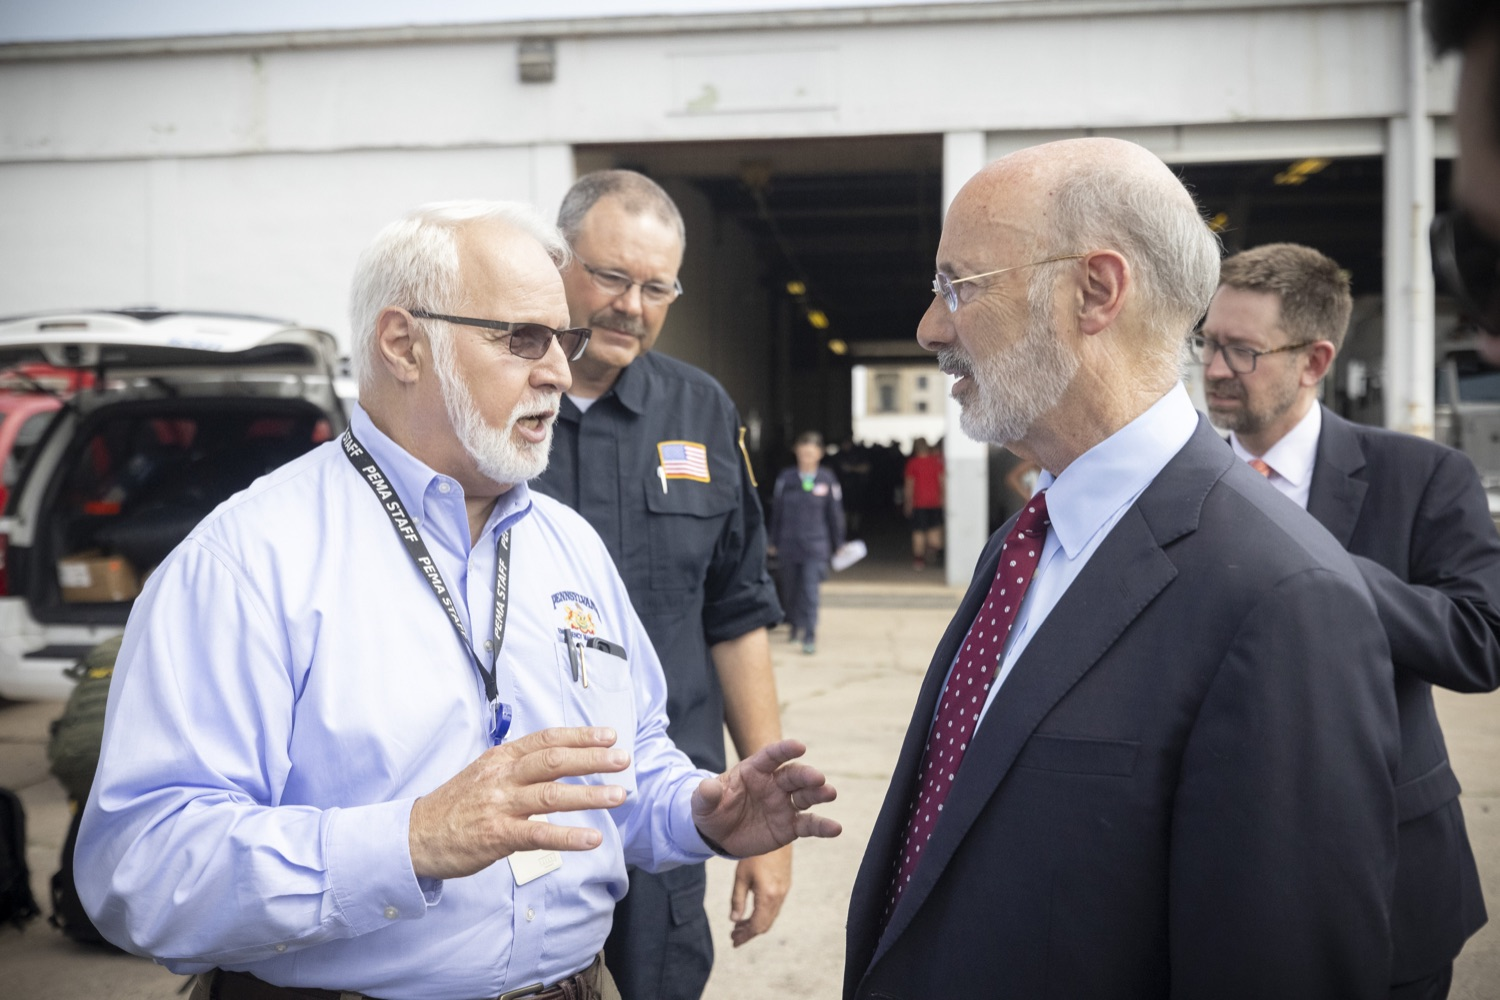 """<a href=""""https://filesource.wostreaming.net/commonwealthofpa/photo/18936_gov_taskforceone_dz_021.jpg"""" target=""""_blank"""">⇣Download Photo<br></a>Governor Tom Wolf thanked members of Pennsylvania-Task Force 1 (PA- TF1), who returned today to Philadelphia after spending two weeks assisting with search and rescue efforts at the site of the recent deadly building collapse in Surfside, Florida.  Philadelphia, Pa.  July 16, 2021"""